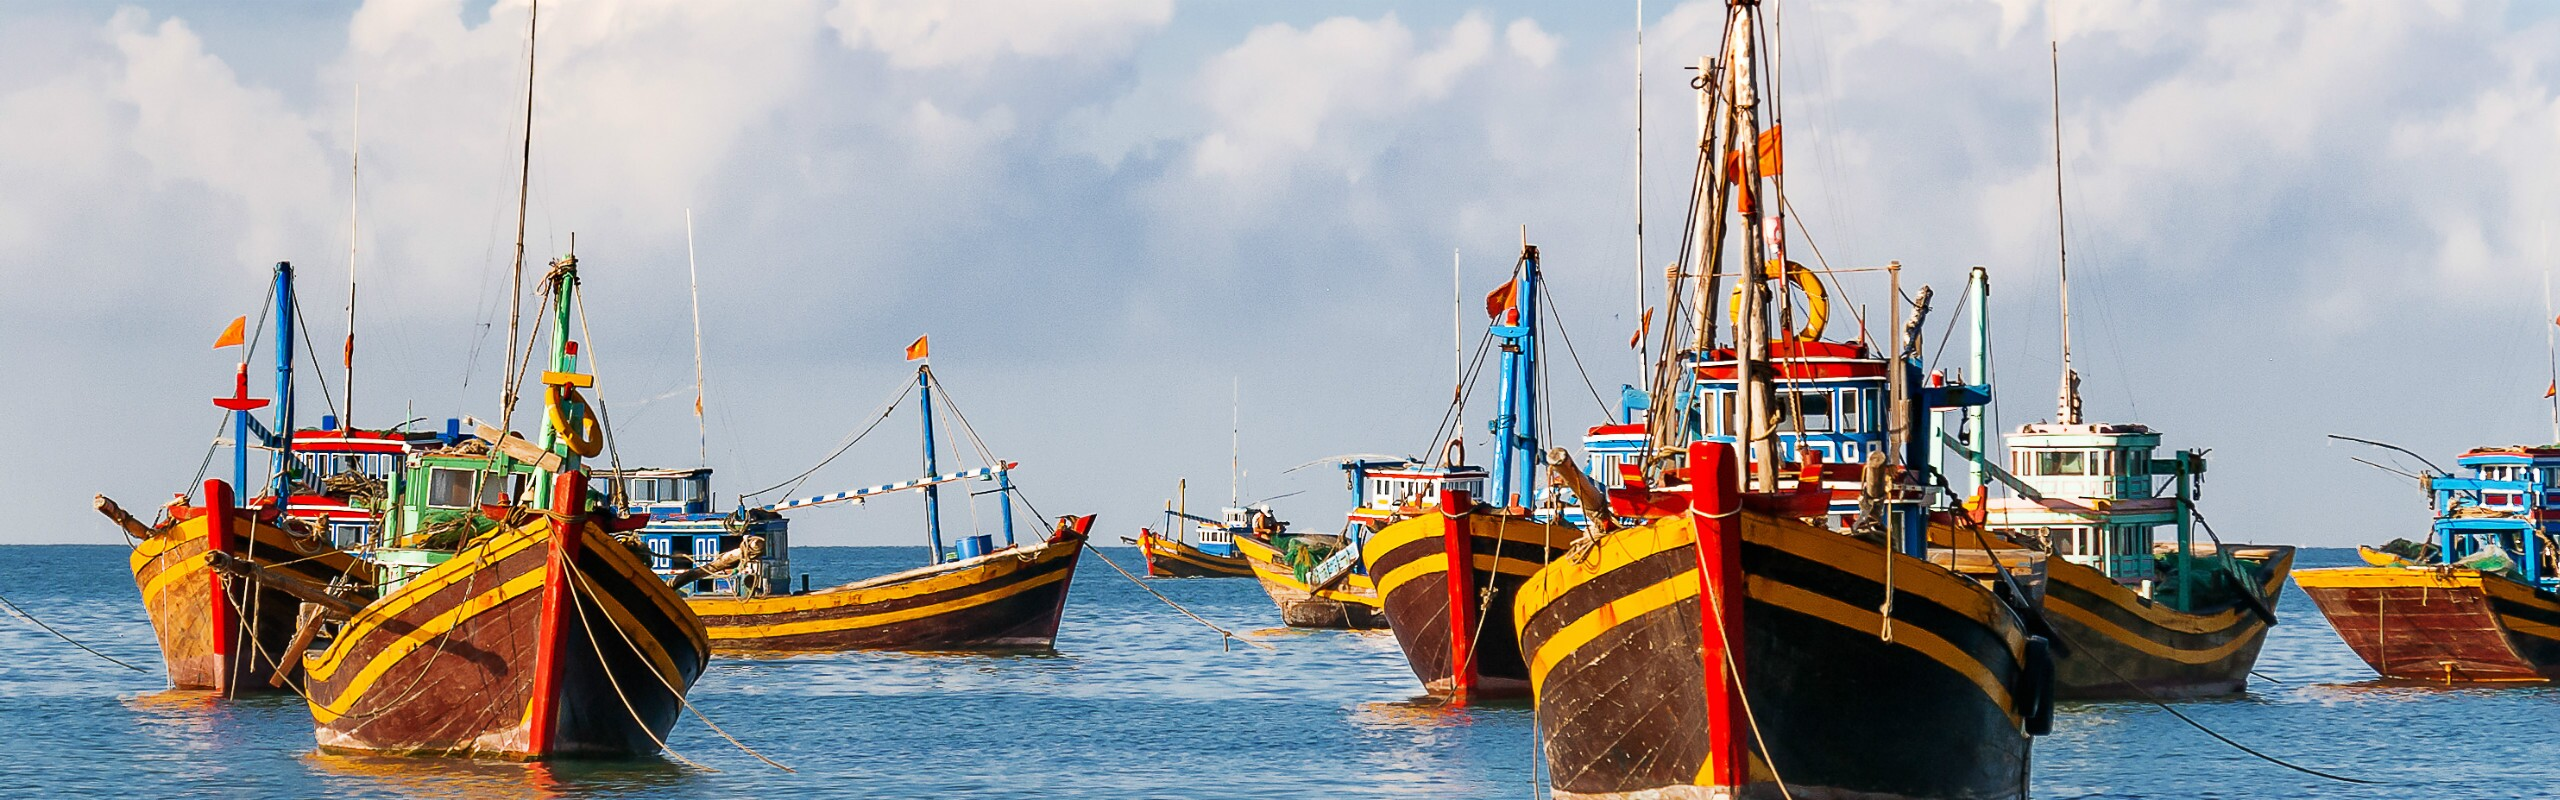 8 Things You Should Know Before Visiting Vietnam - Interesting Facts about Vietnam